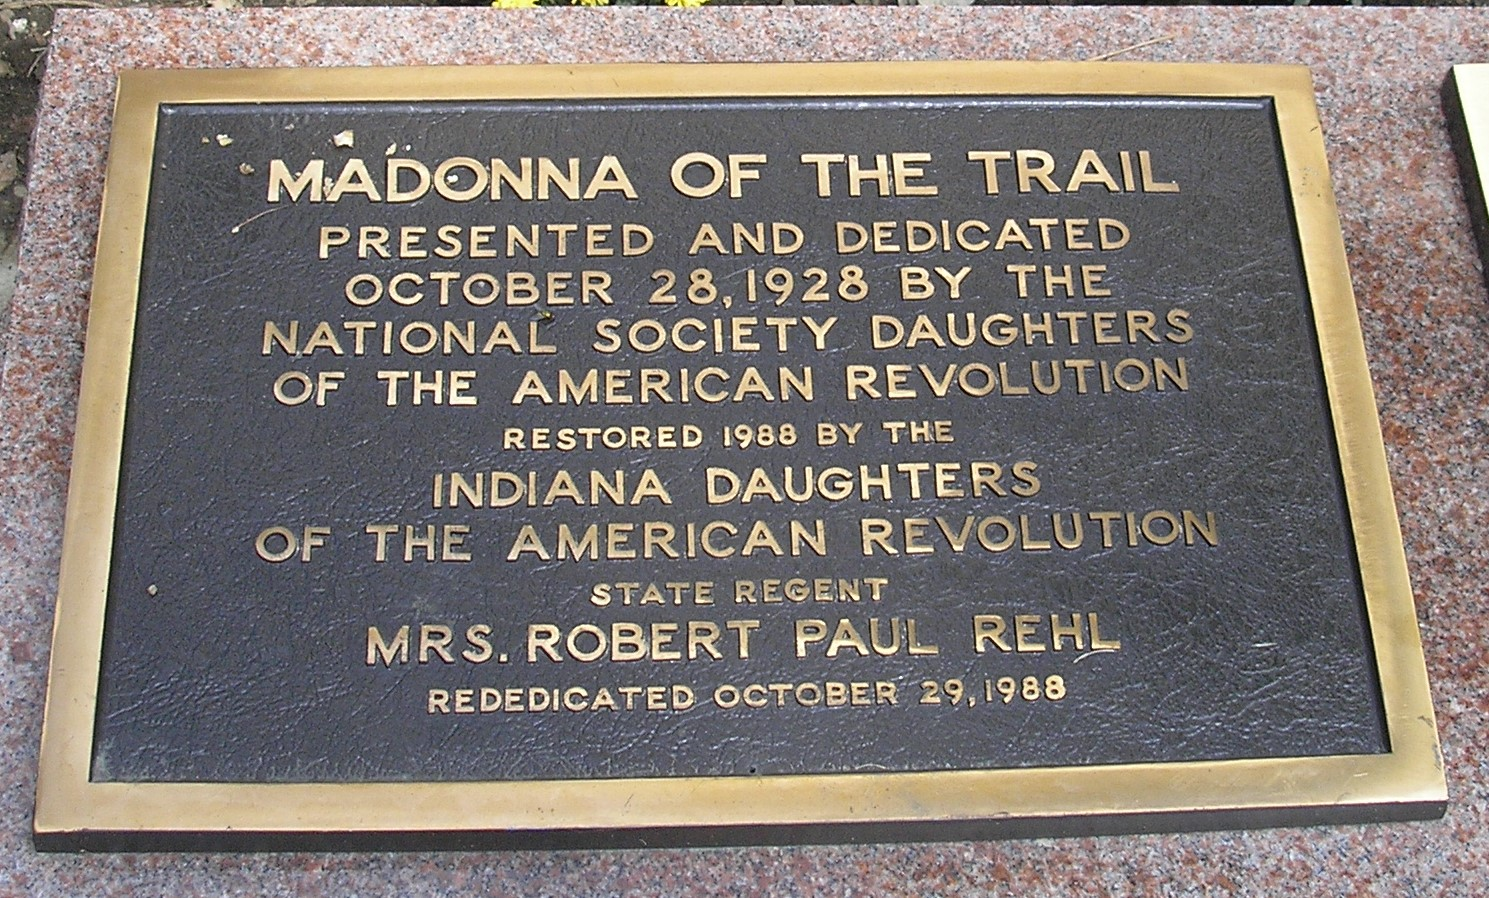 Rededication plaque. Photo by Cynthia Prescott.